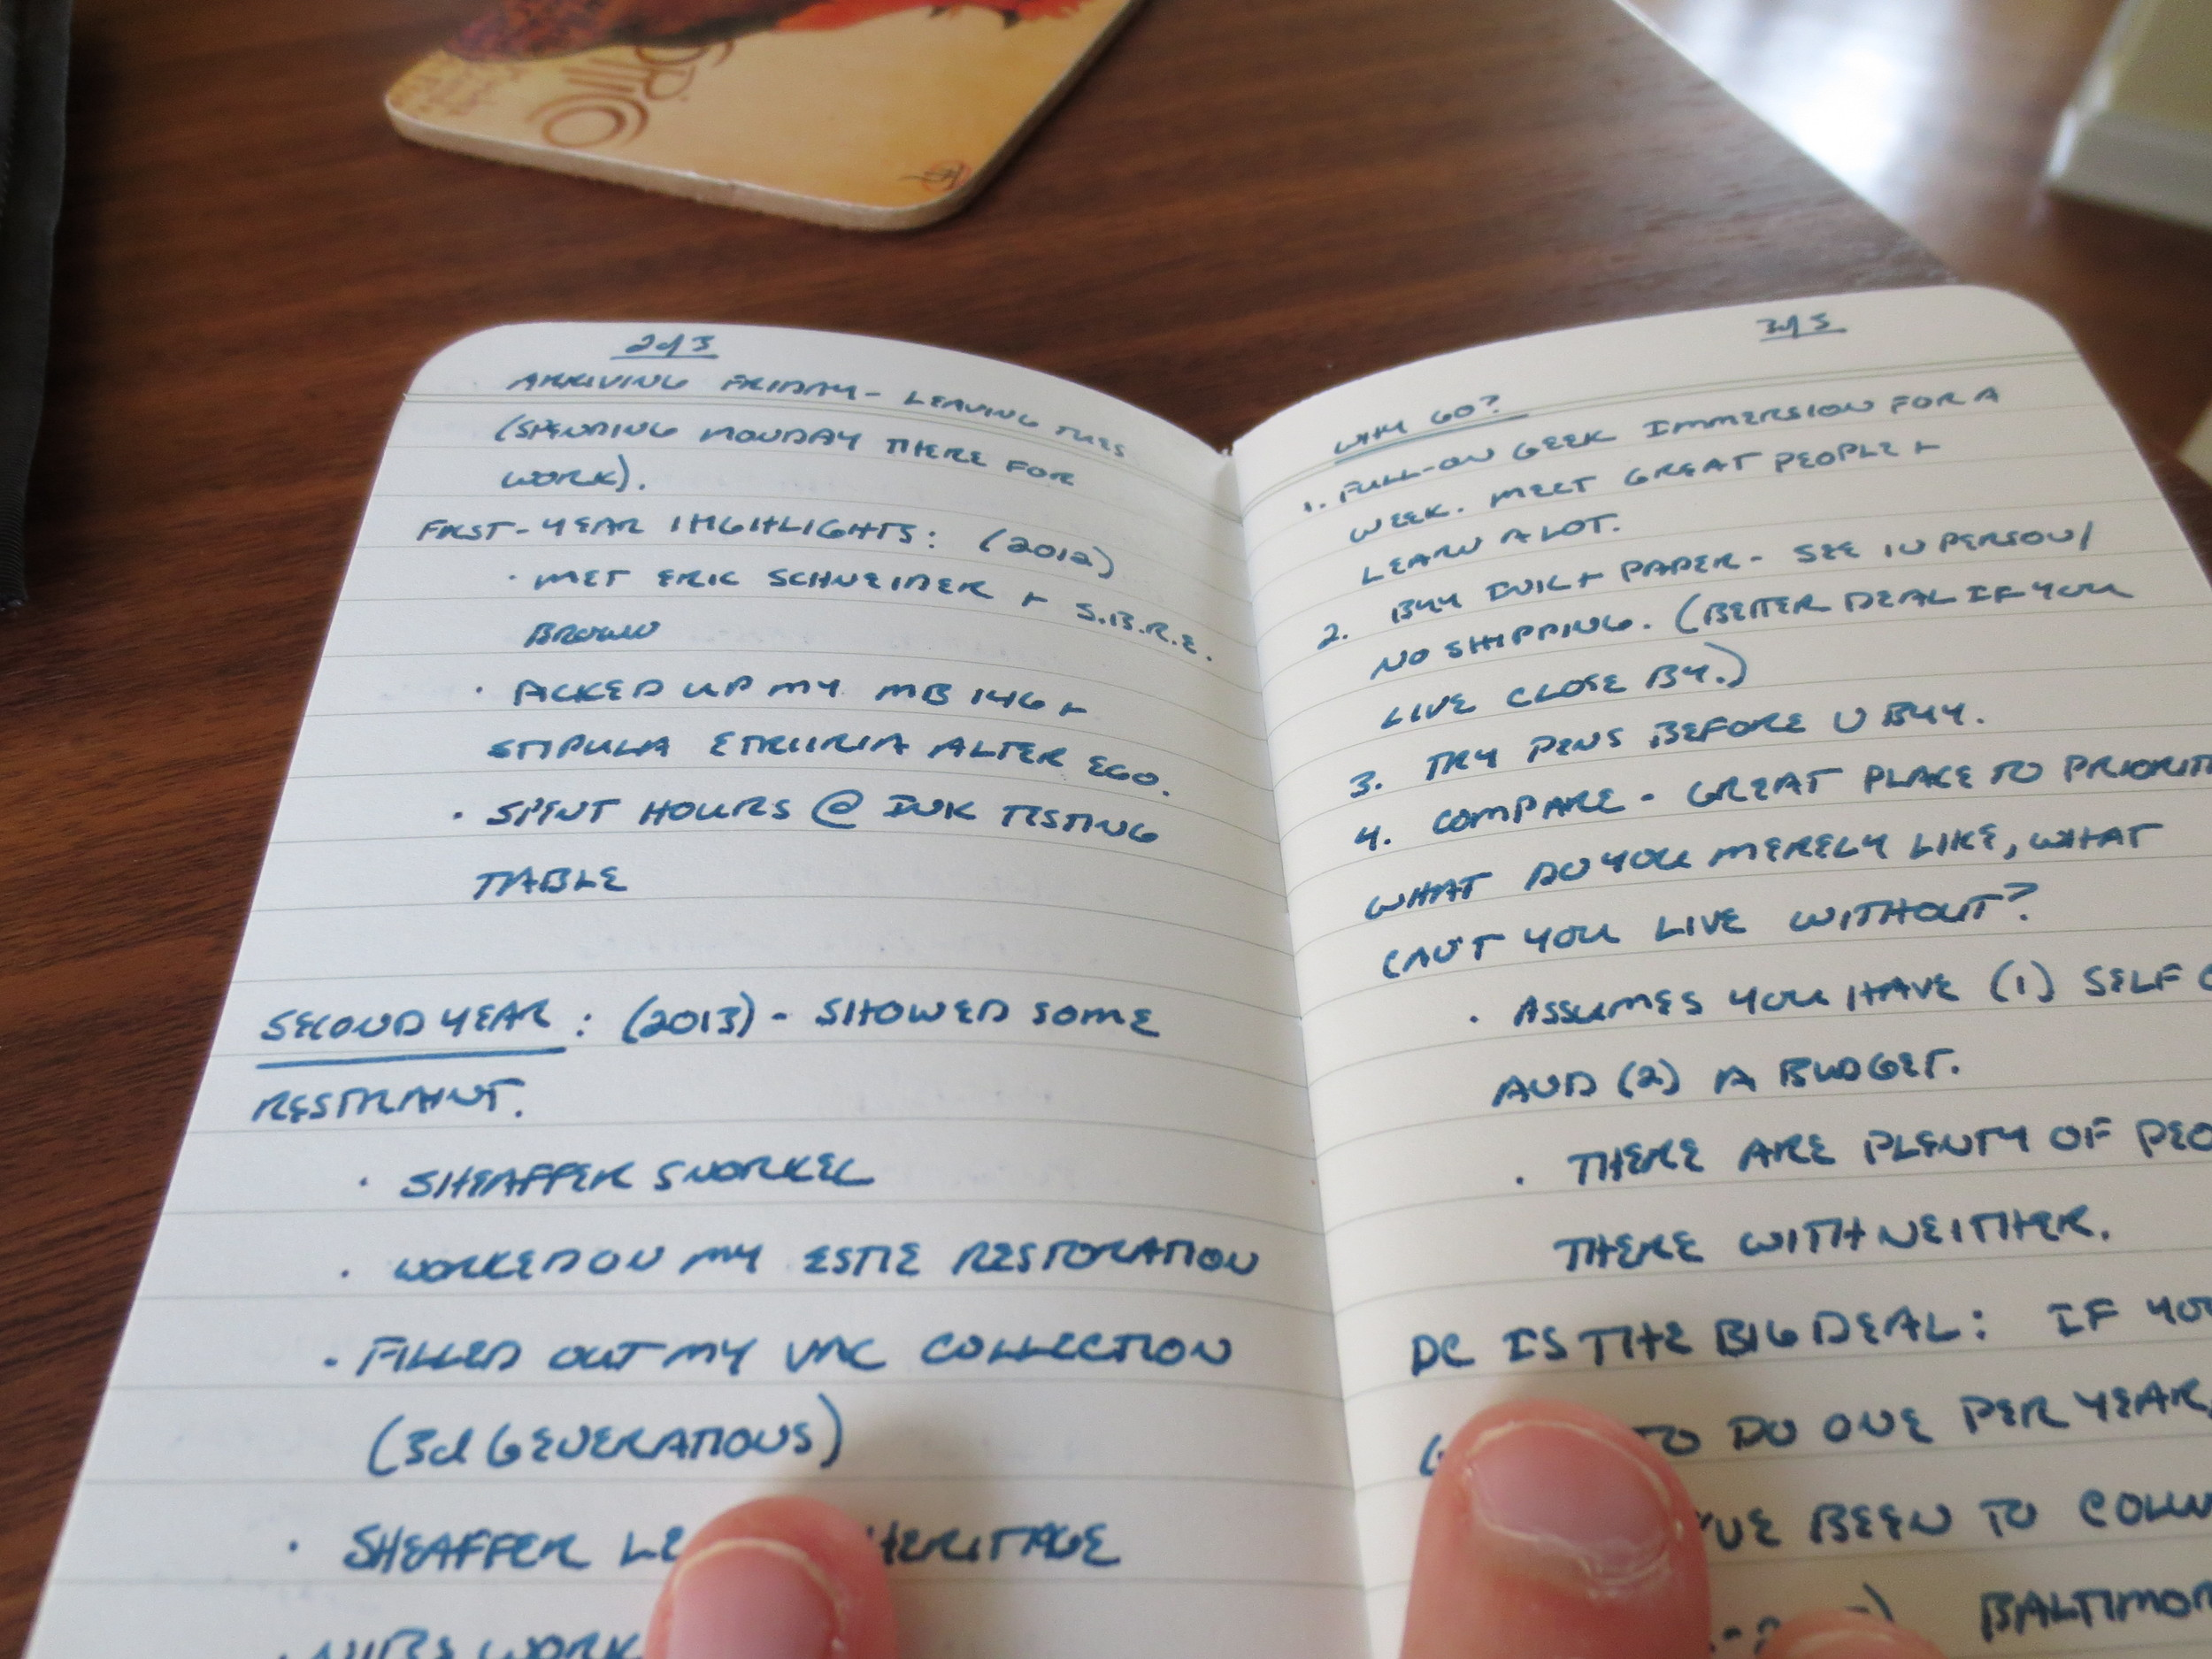 Take a look at the page on the left, which is the flip side of the notebook's first page. No bleed-through at all. There is some minimal show-through, but not near enough to bother me, and this pen is a fairly wet writer.